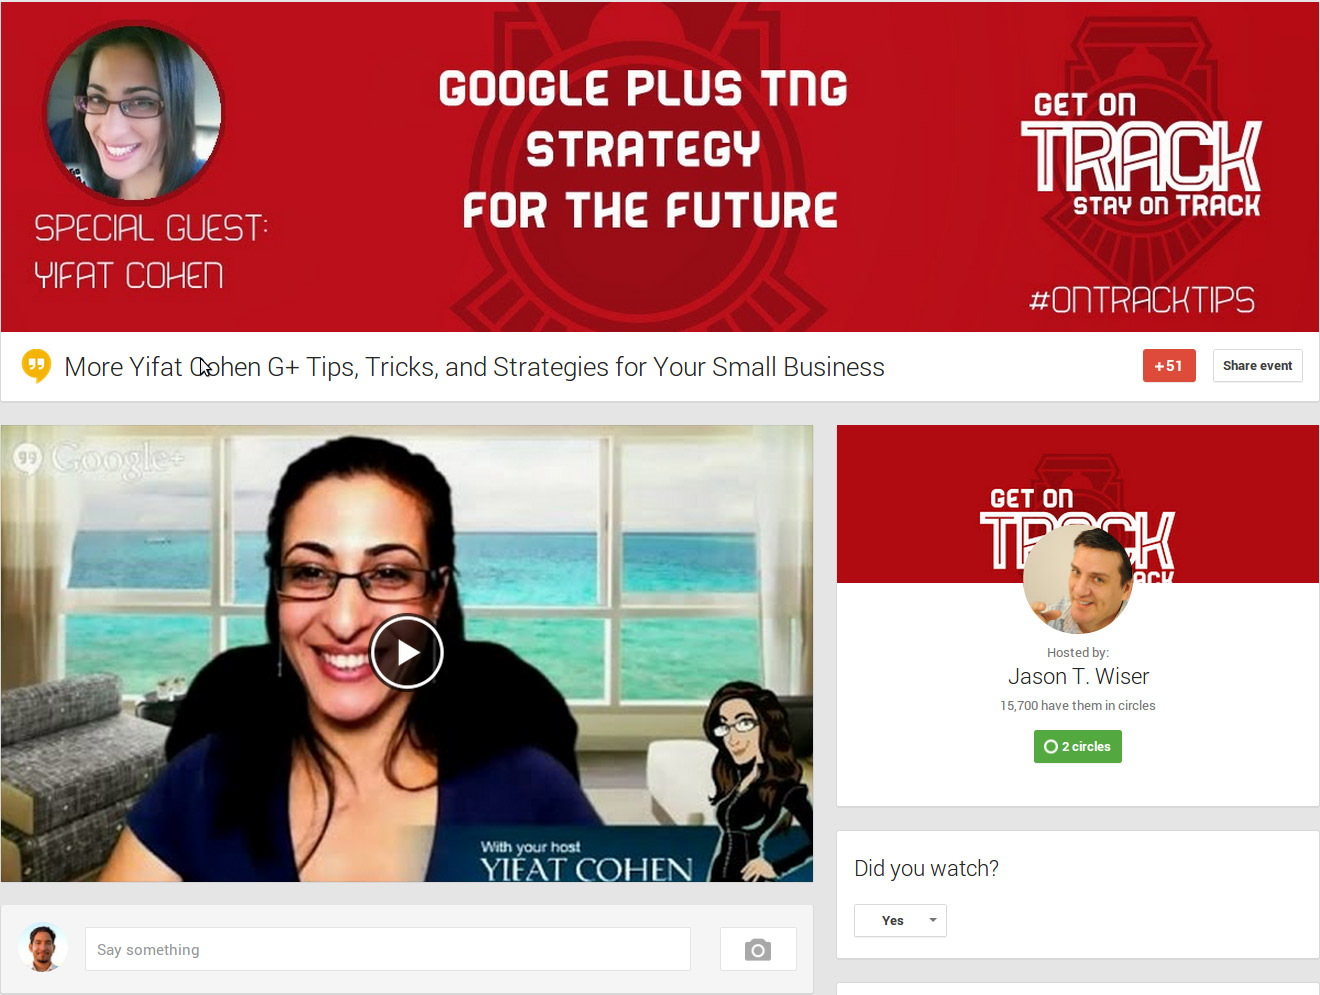 Yifat Cohen - Jaston T.  Wiser - Get On Track Stay On Track - More Yifat Cohen G+ Tips, Tricks, and Strategies for Your Small Business